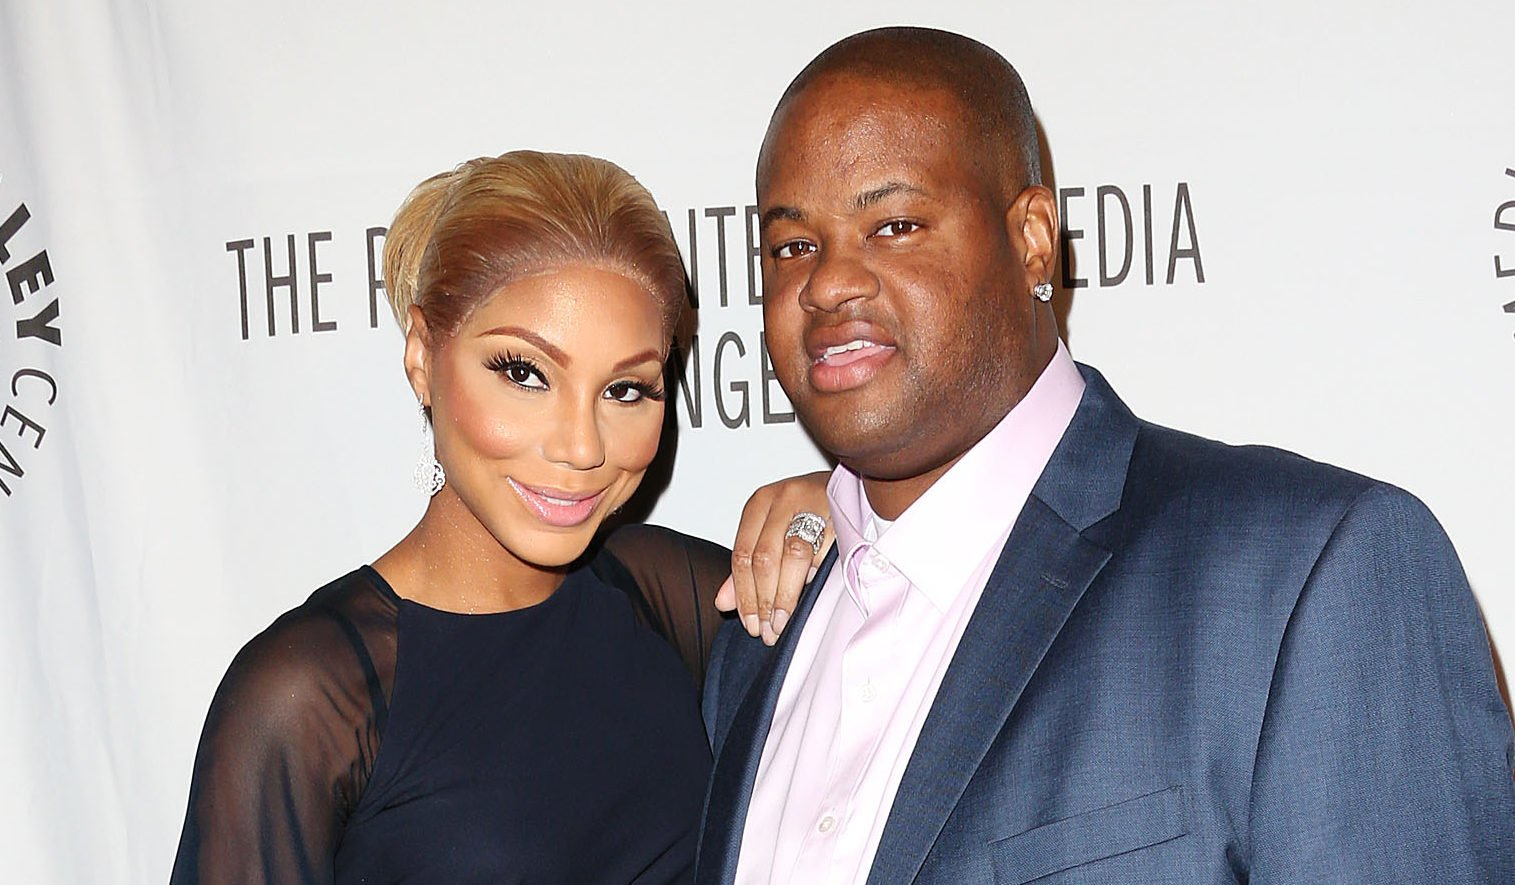 Tamar & Vince spotted together at airport, give status of their